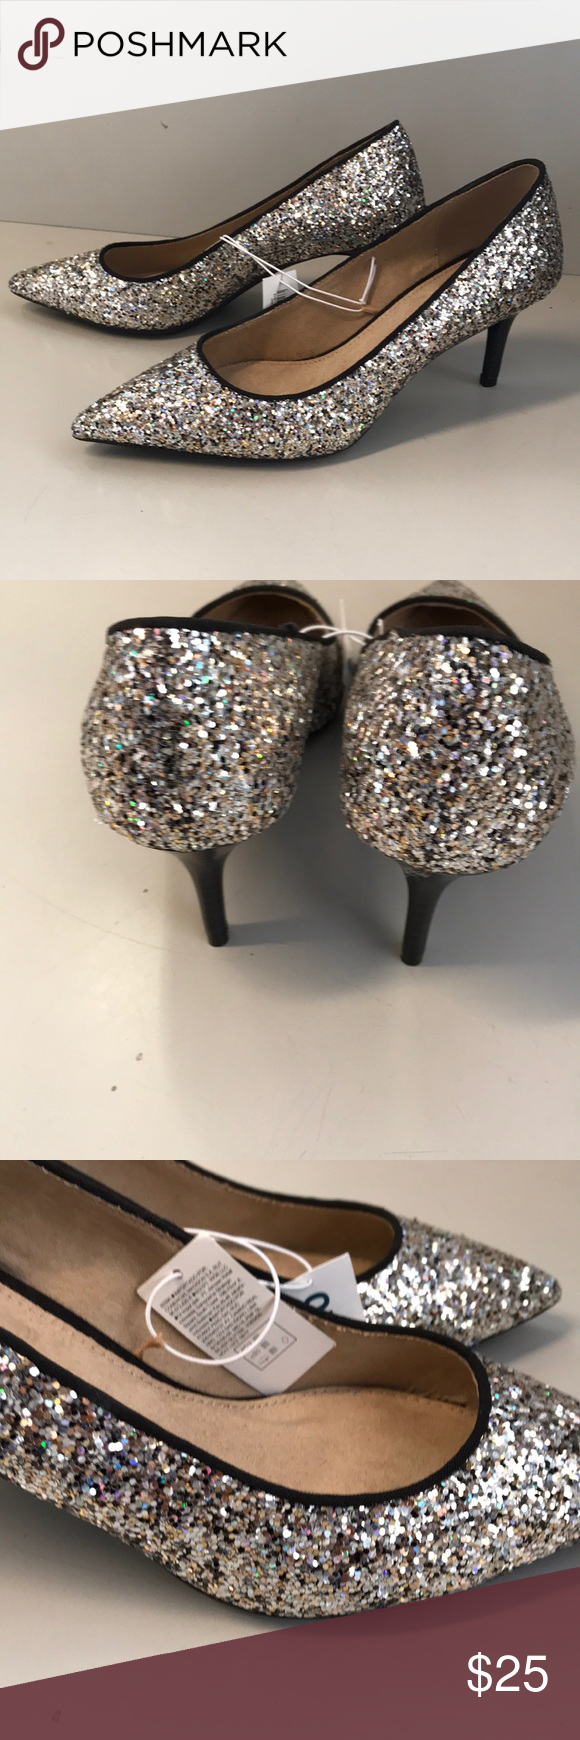 cf030fe27a4f 🆕 New Old Navy glitter heels Boutique in 2018